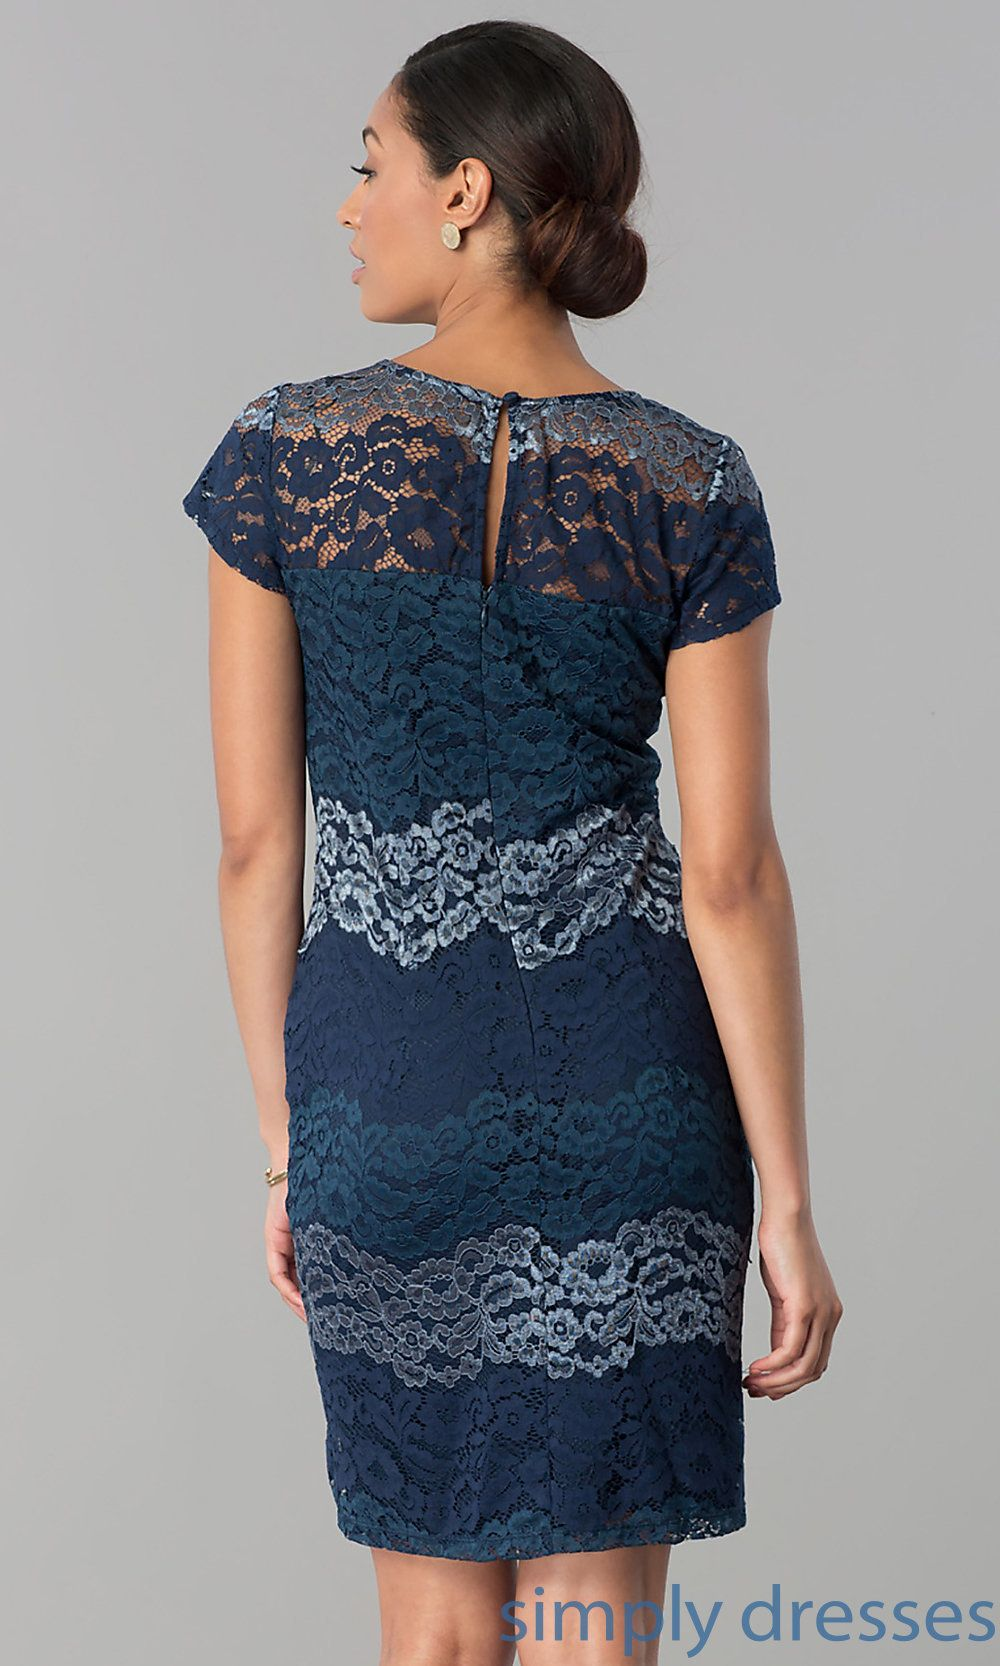 Short sleeve dresses for wedding guests  Short Lace WeddingGuest Party Dress with Sleeves  Фламенко